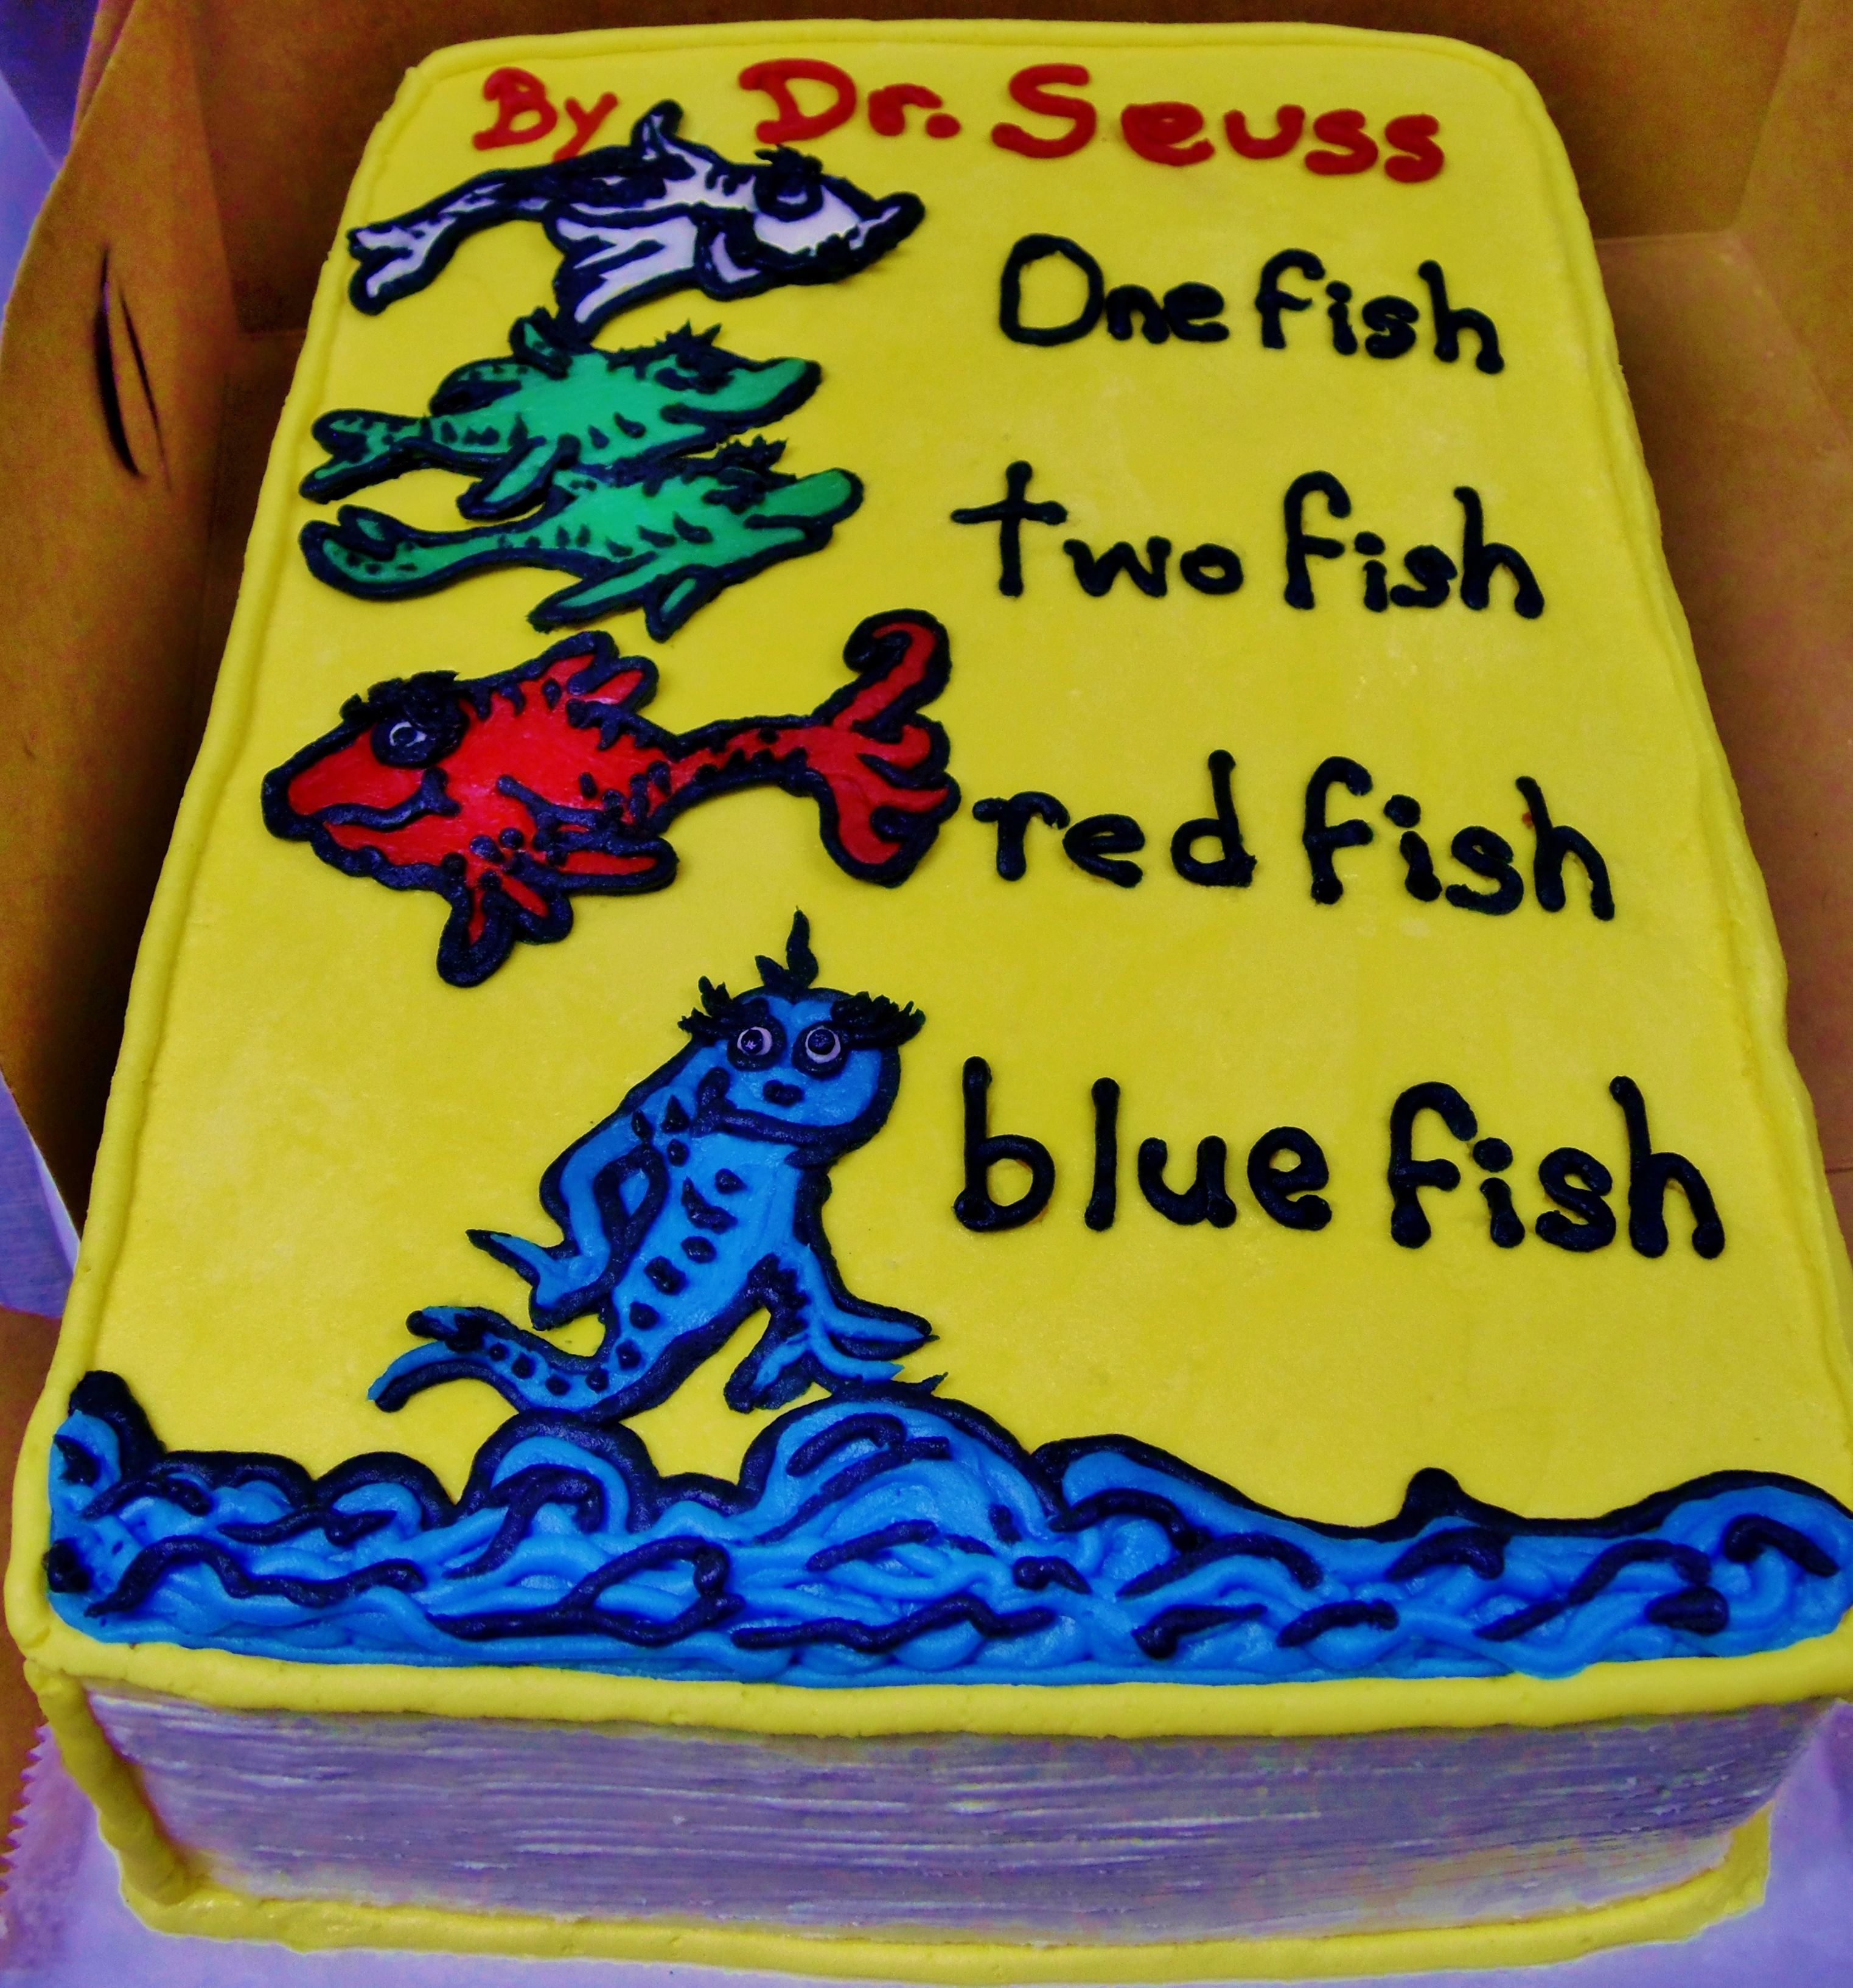 Dr Seuss Birthday Book Cake Design In 100 Buttercream Icing